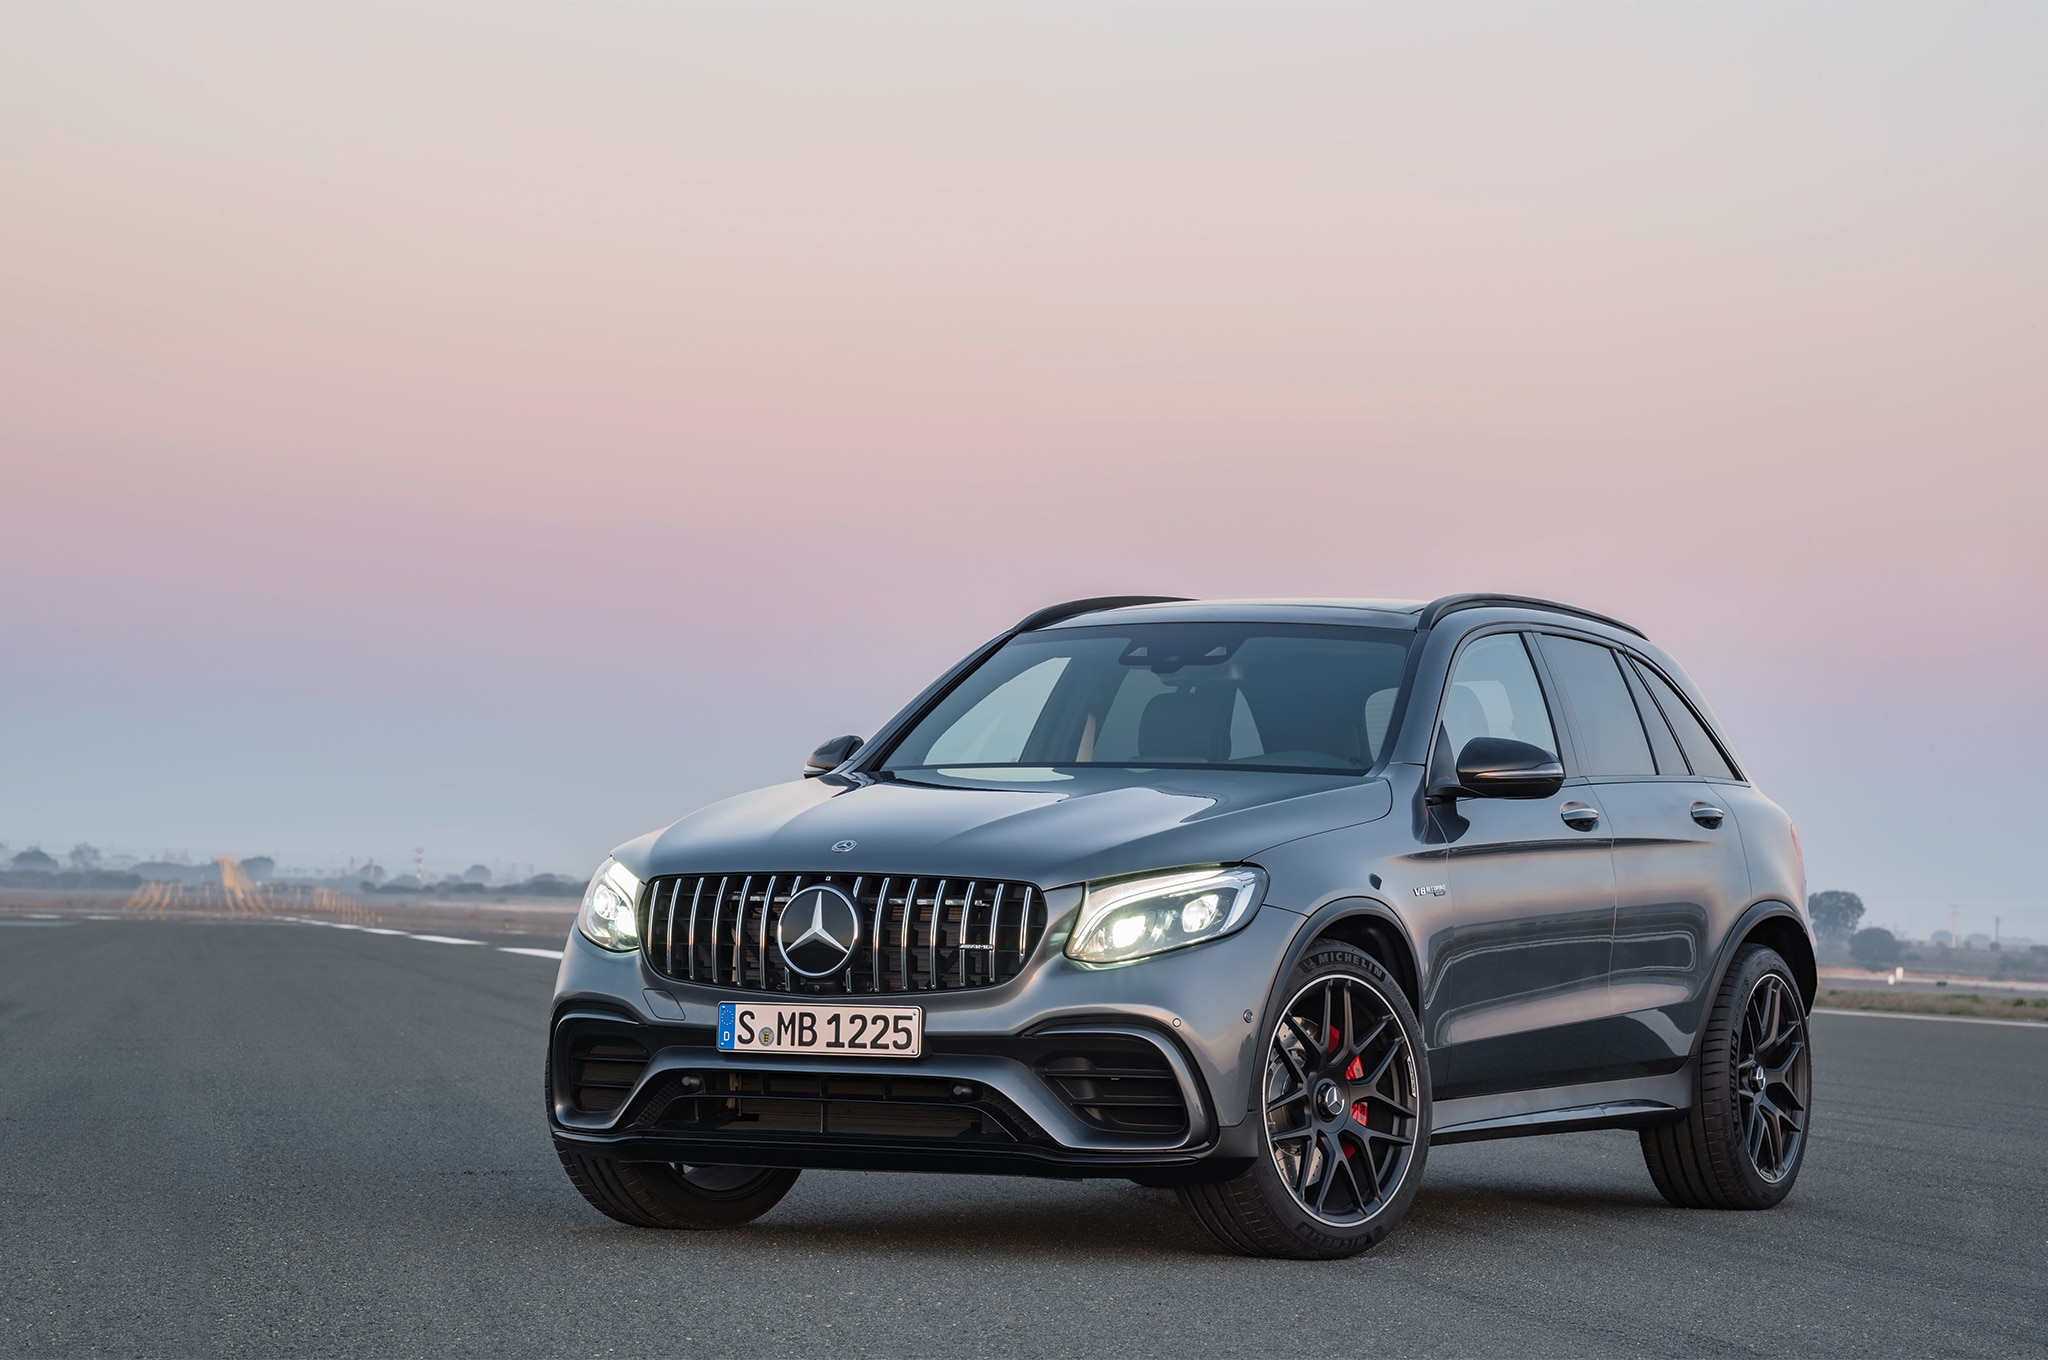 2018 Mercedes AMG GLC63 S Front Three Quarter 02 11